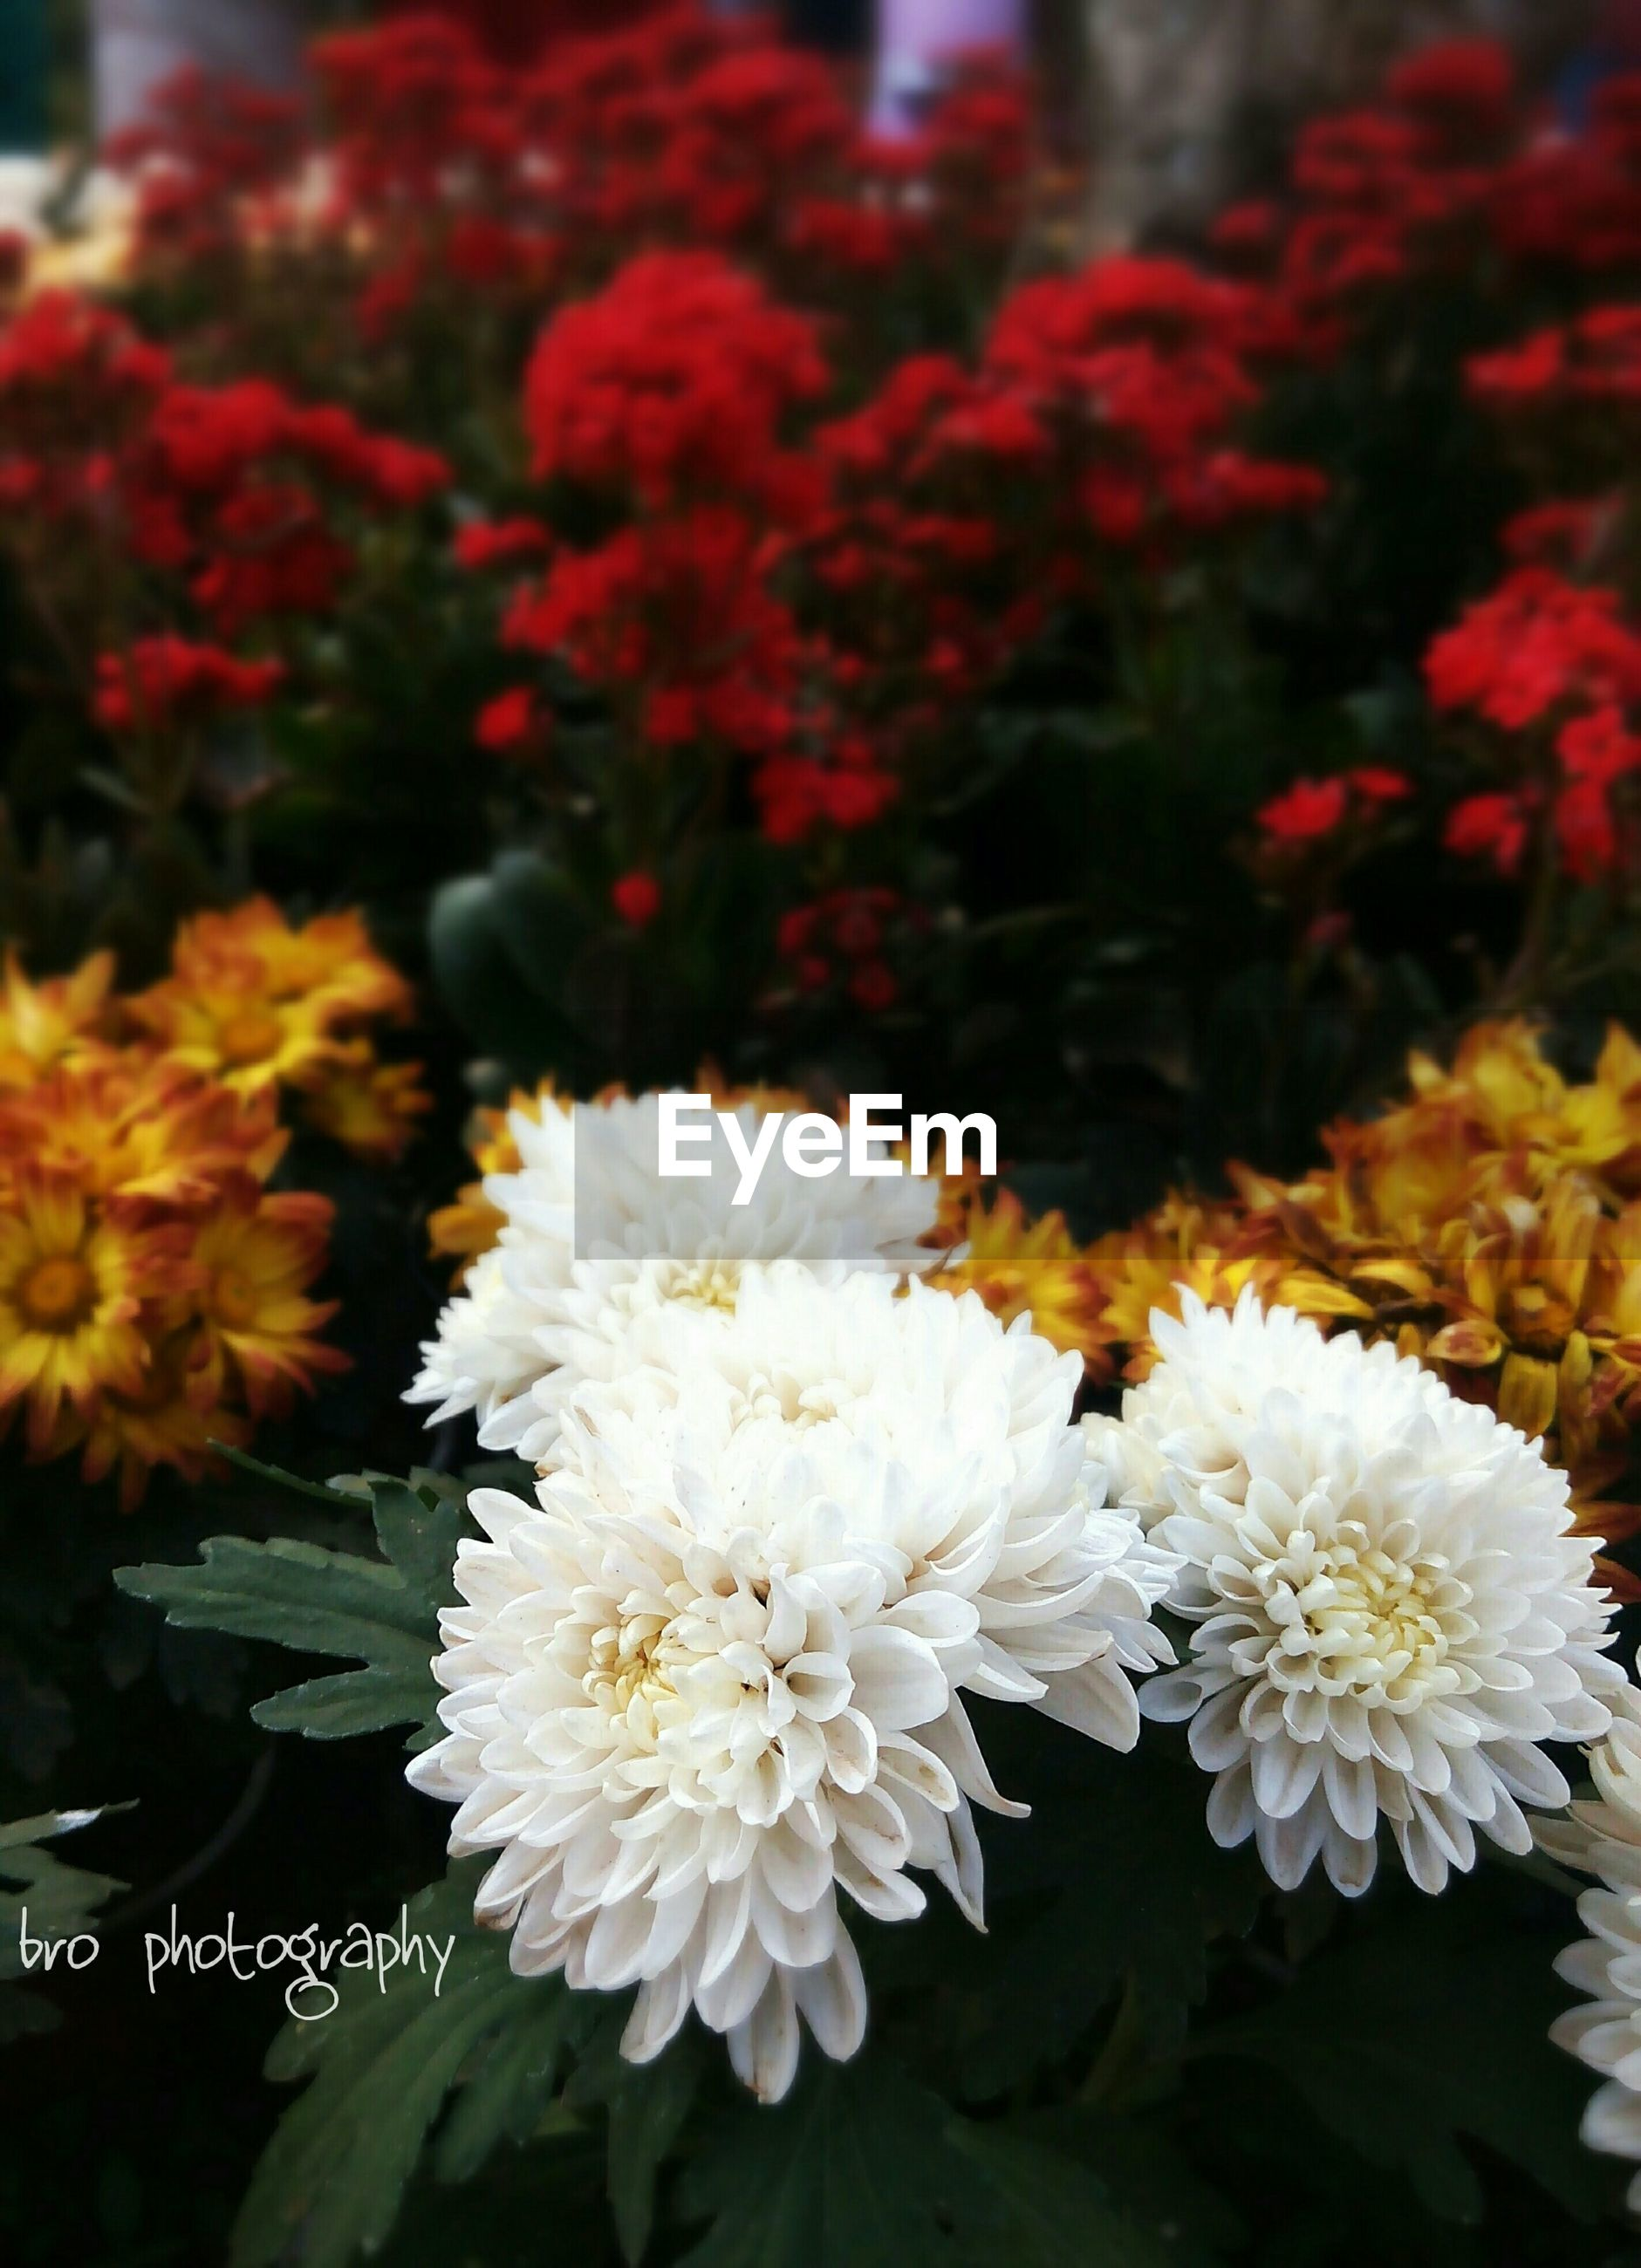 flower, freshness, petal, fragility, flower head, beauty in nature, growth, blooming, nature, close-up, in bloom, focus on foreground, high angle view, plant, white color, bunch of flowers, abundance, blossom, botany, park - man made space